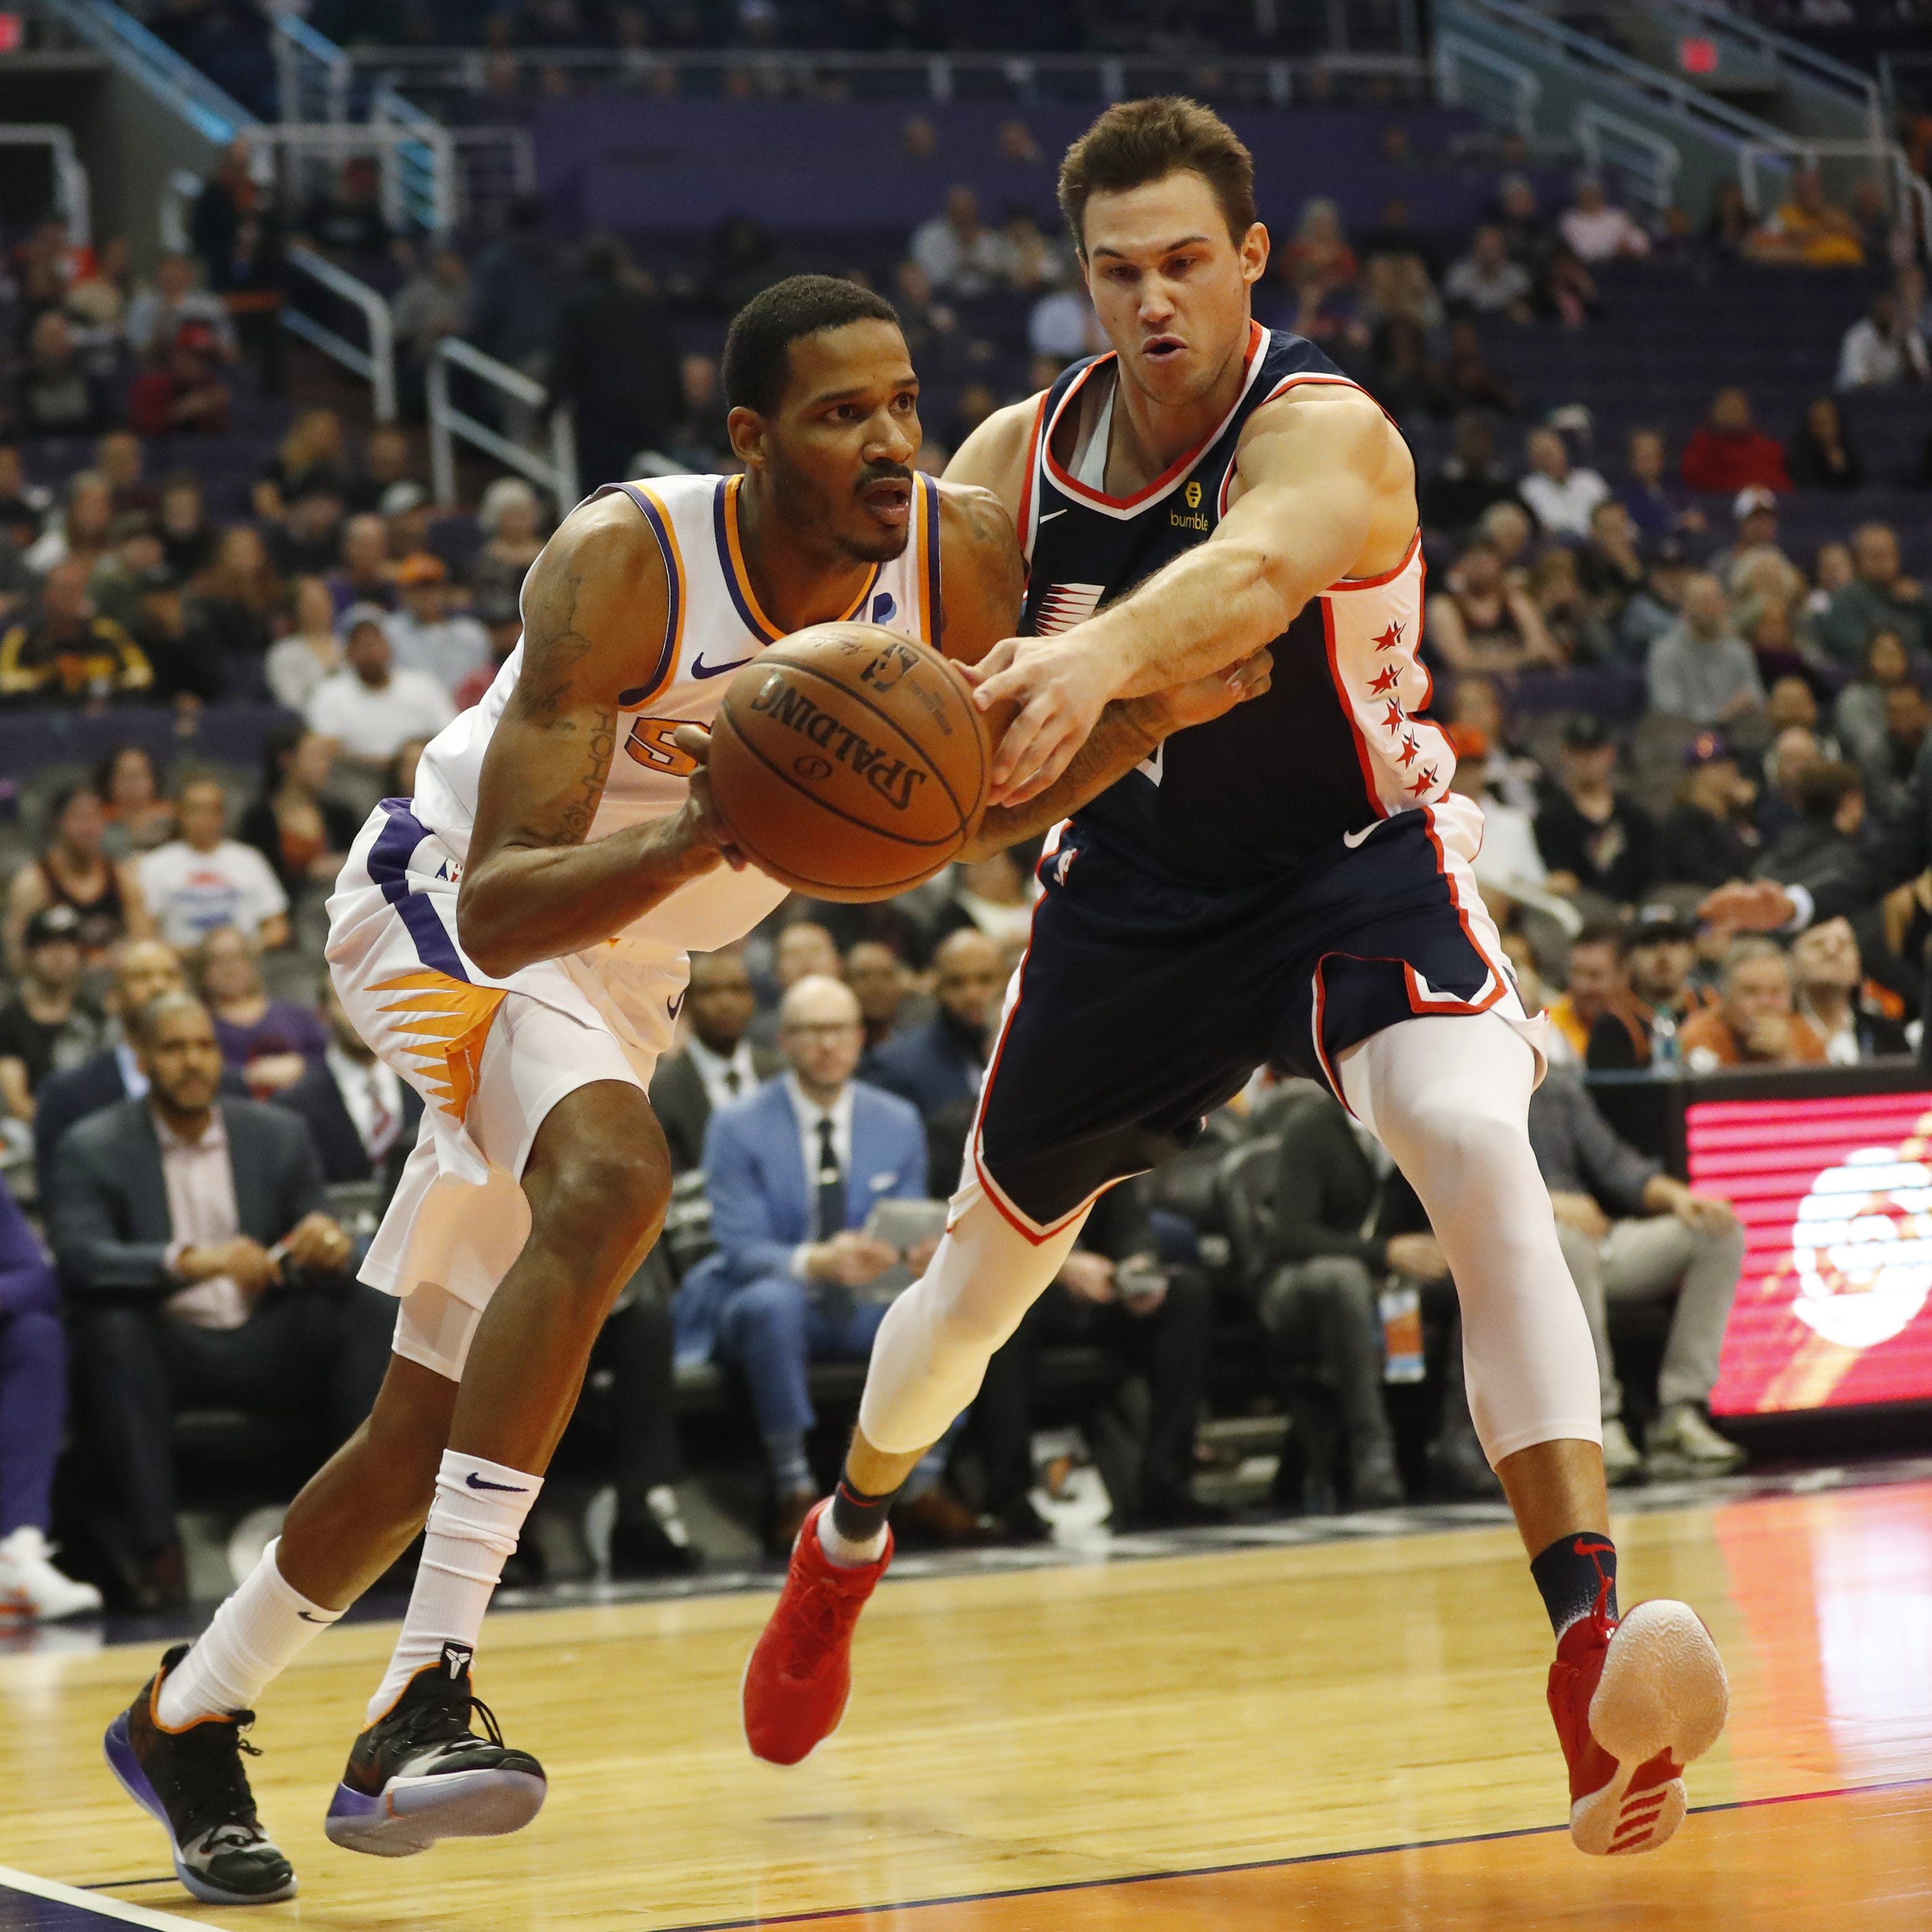 The Suns tried, but were denied the Lakers' young core for Trevor Ariza, report says